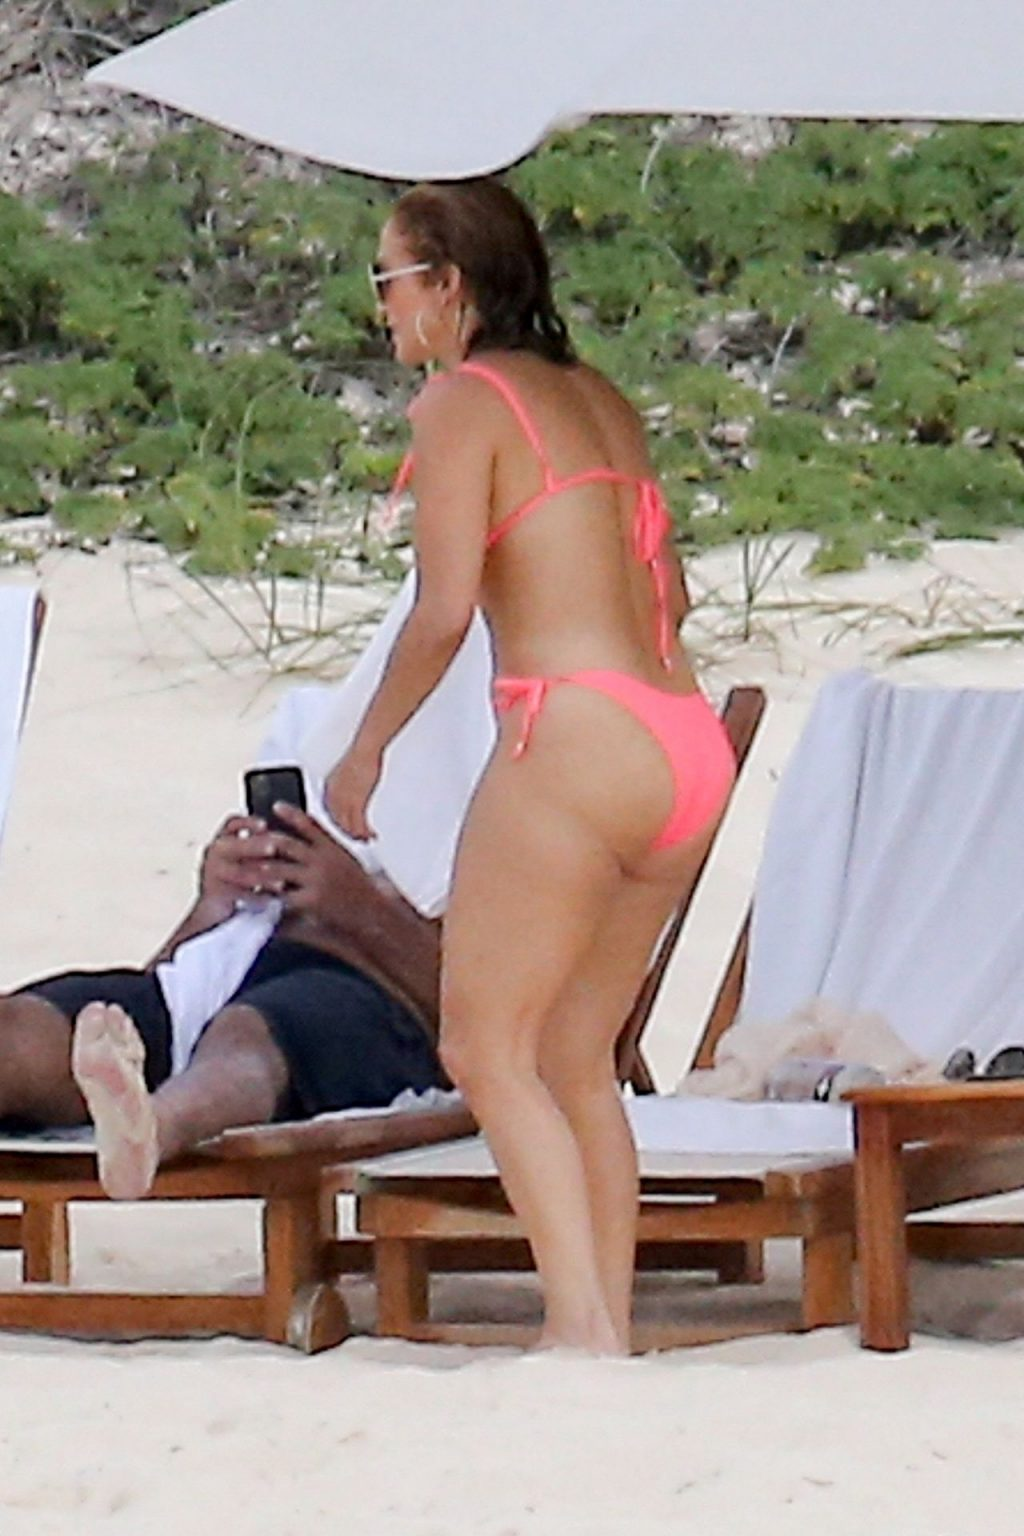 Jennifer Lopez & Alex Rodriguez Soak Up the Sun While Enjoying a Beach Day in Turks and Caicos (80 Photos)